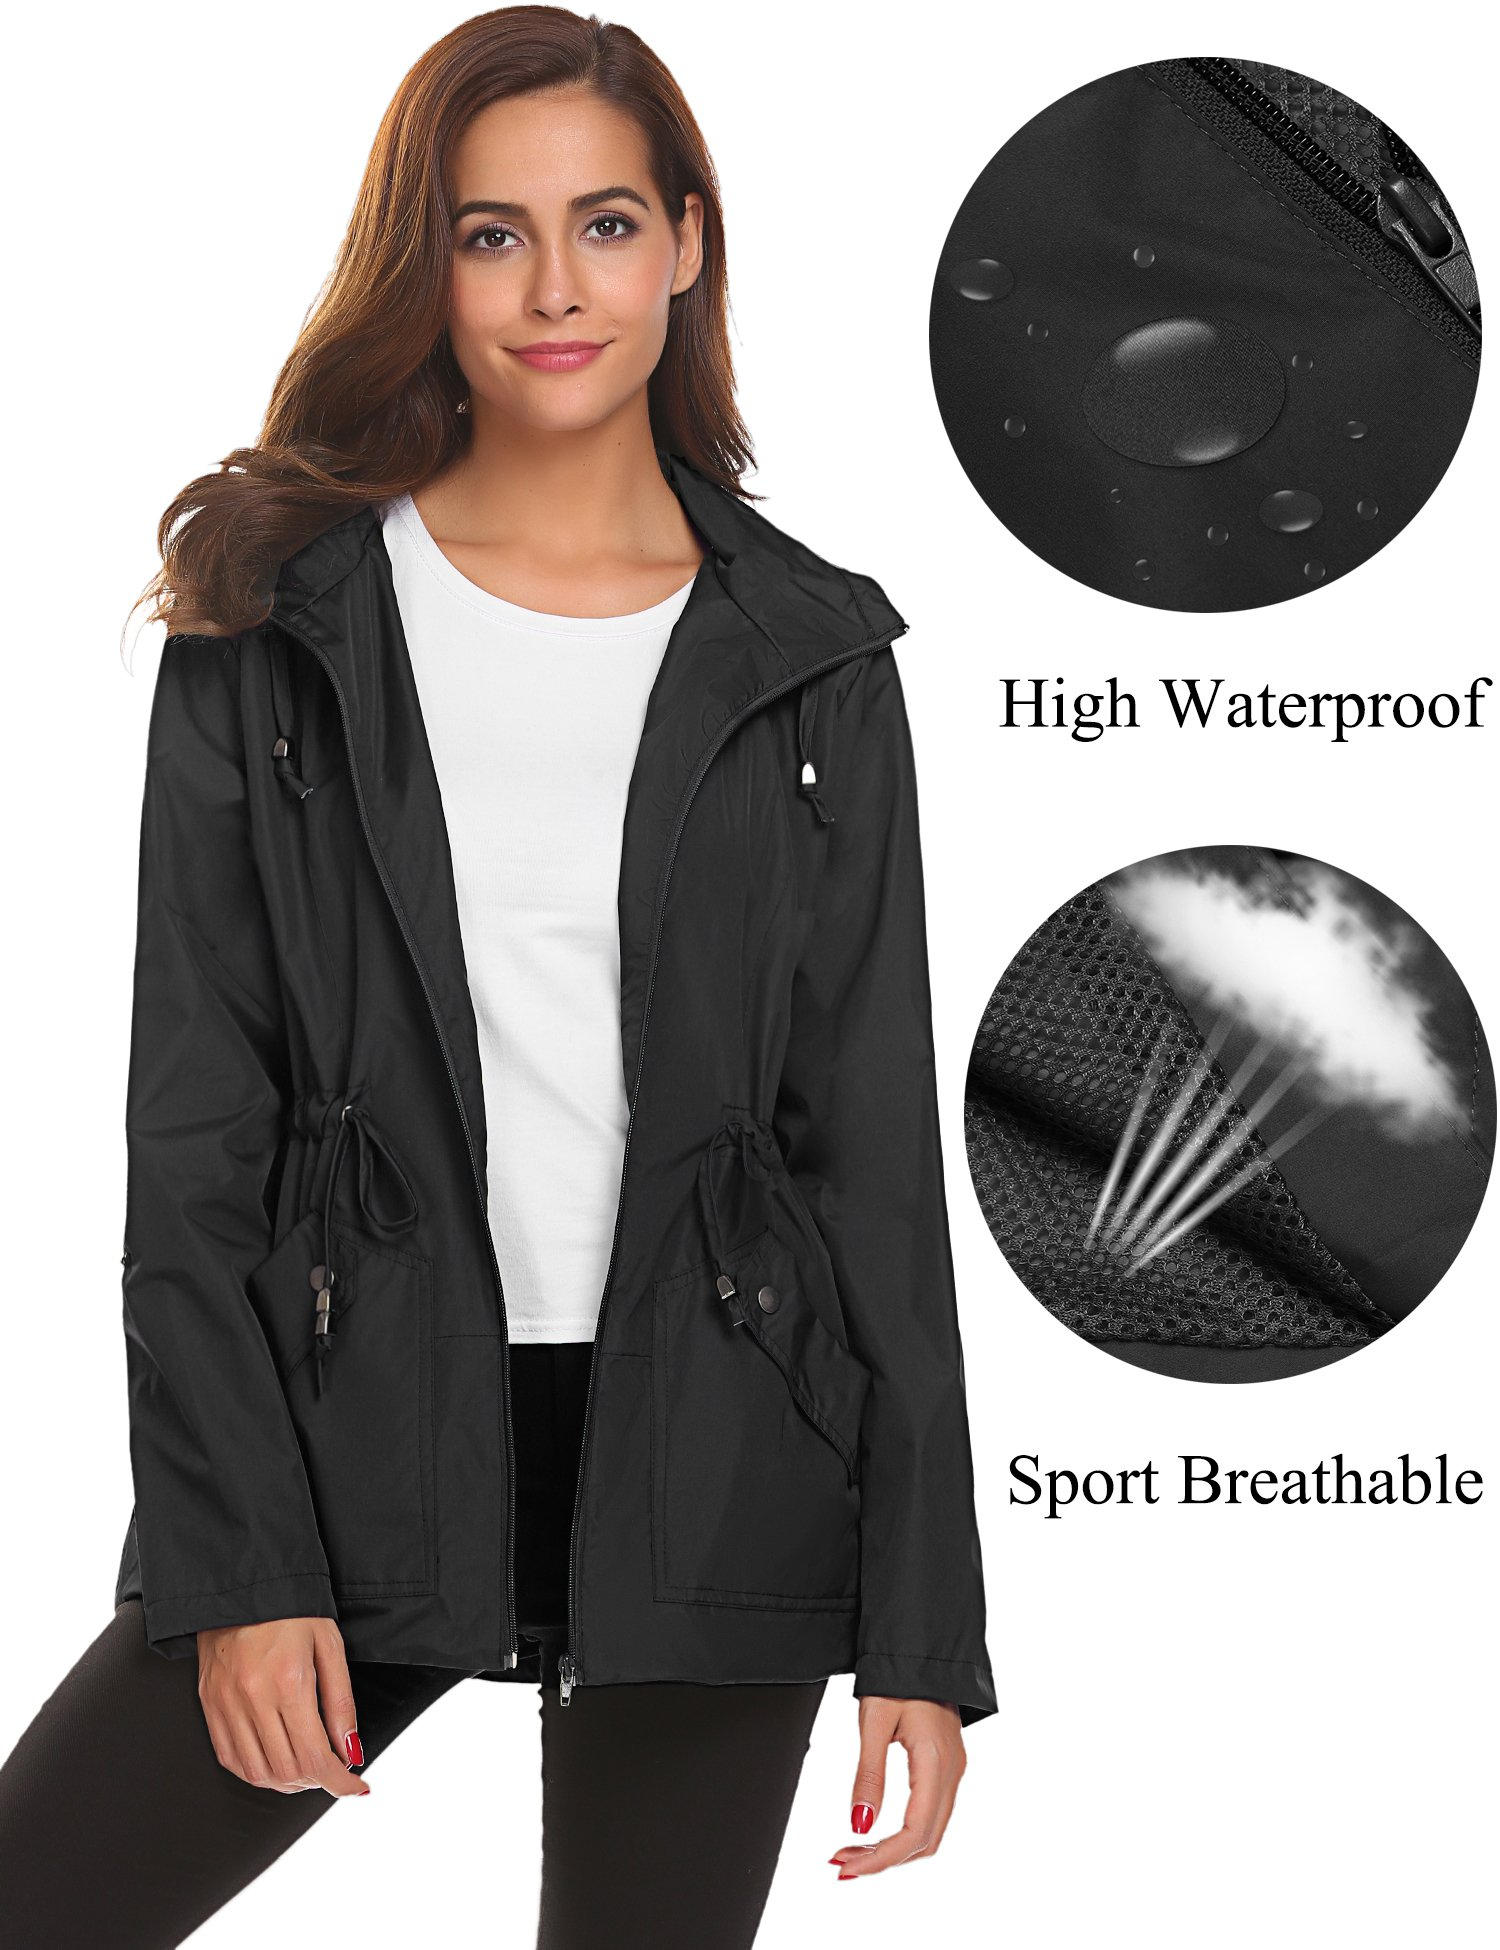 Romanstii Lightweight Jacket for Women Waterproof Raincoat with Hood Windbreaker Lined,Black Lightweight Rain Coat,Large